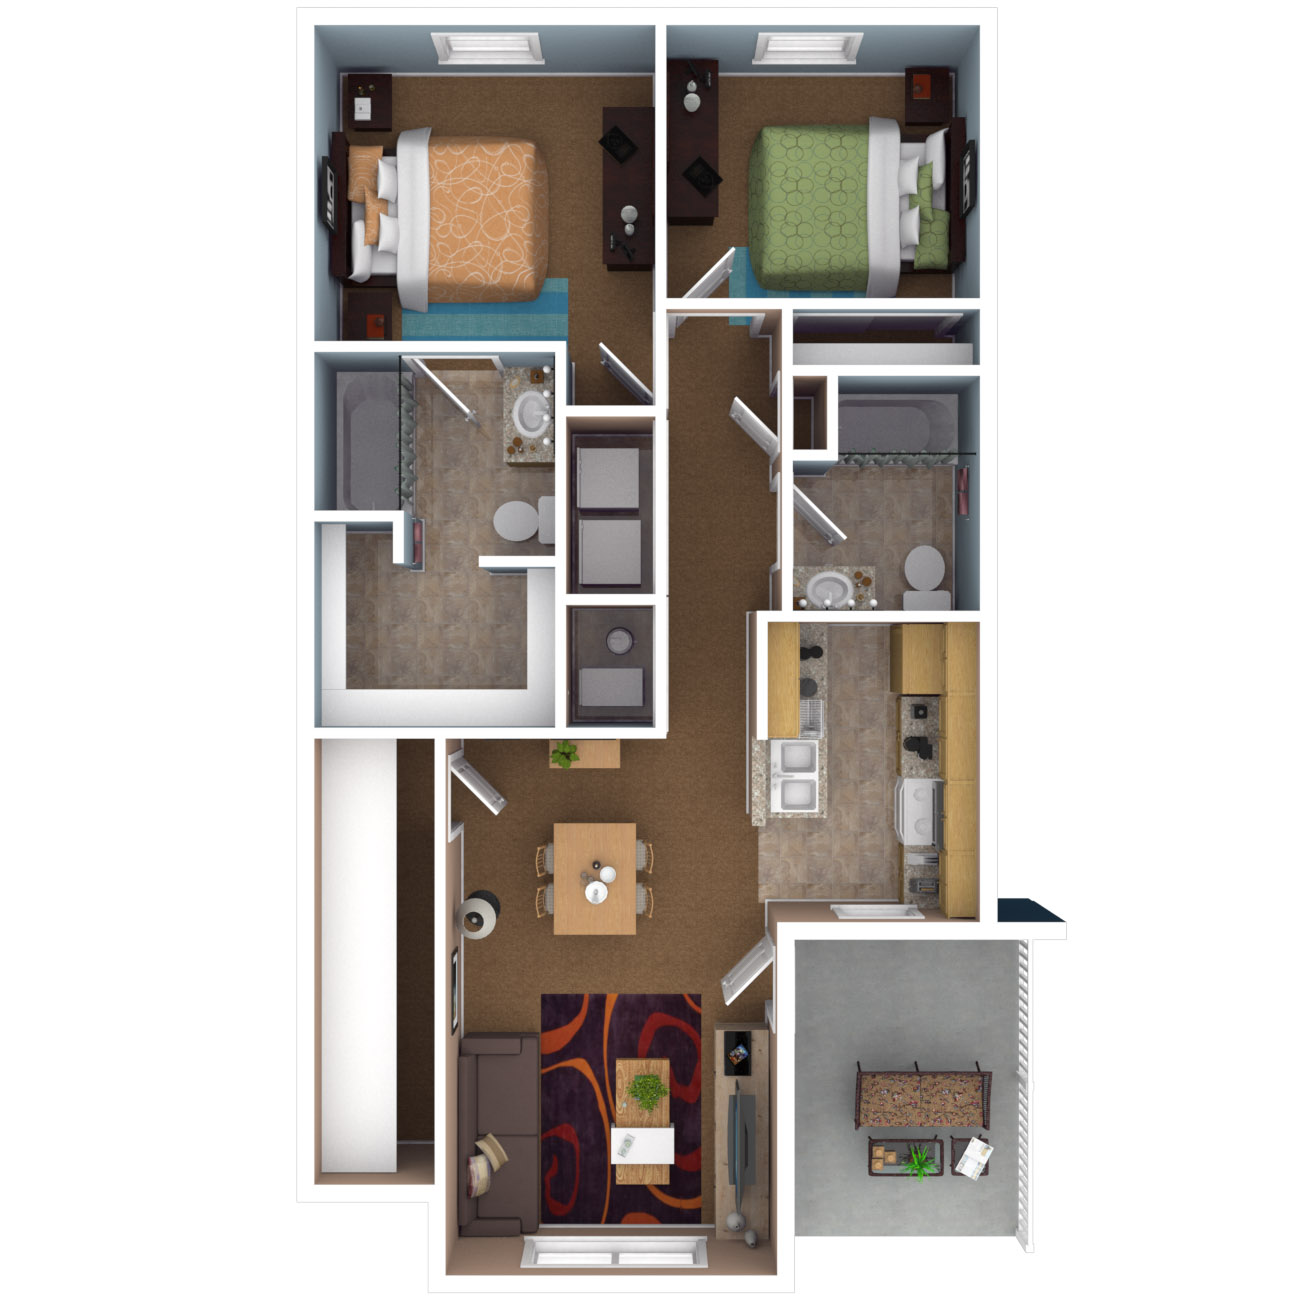 Apartments in indianapolis floor plans Two bedroom apartments